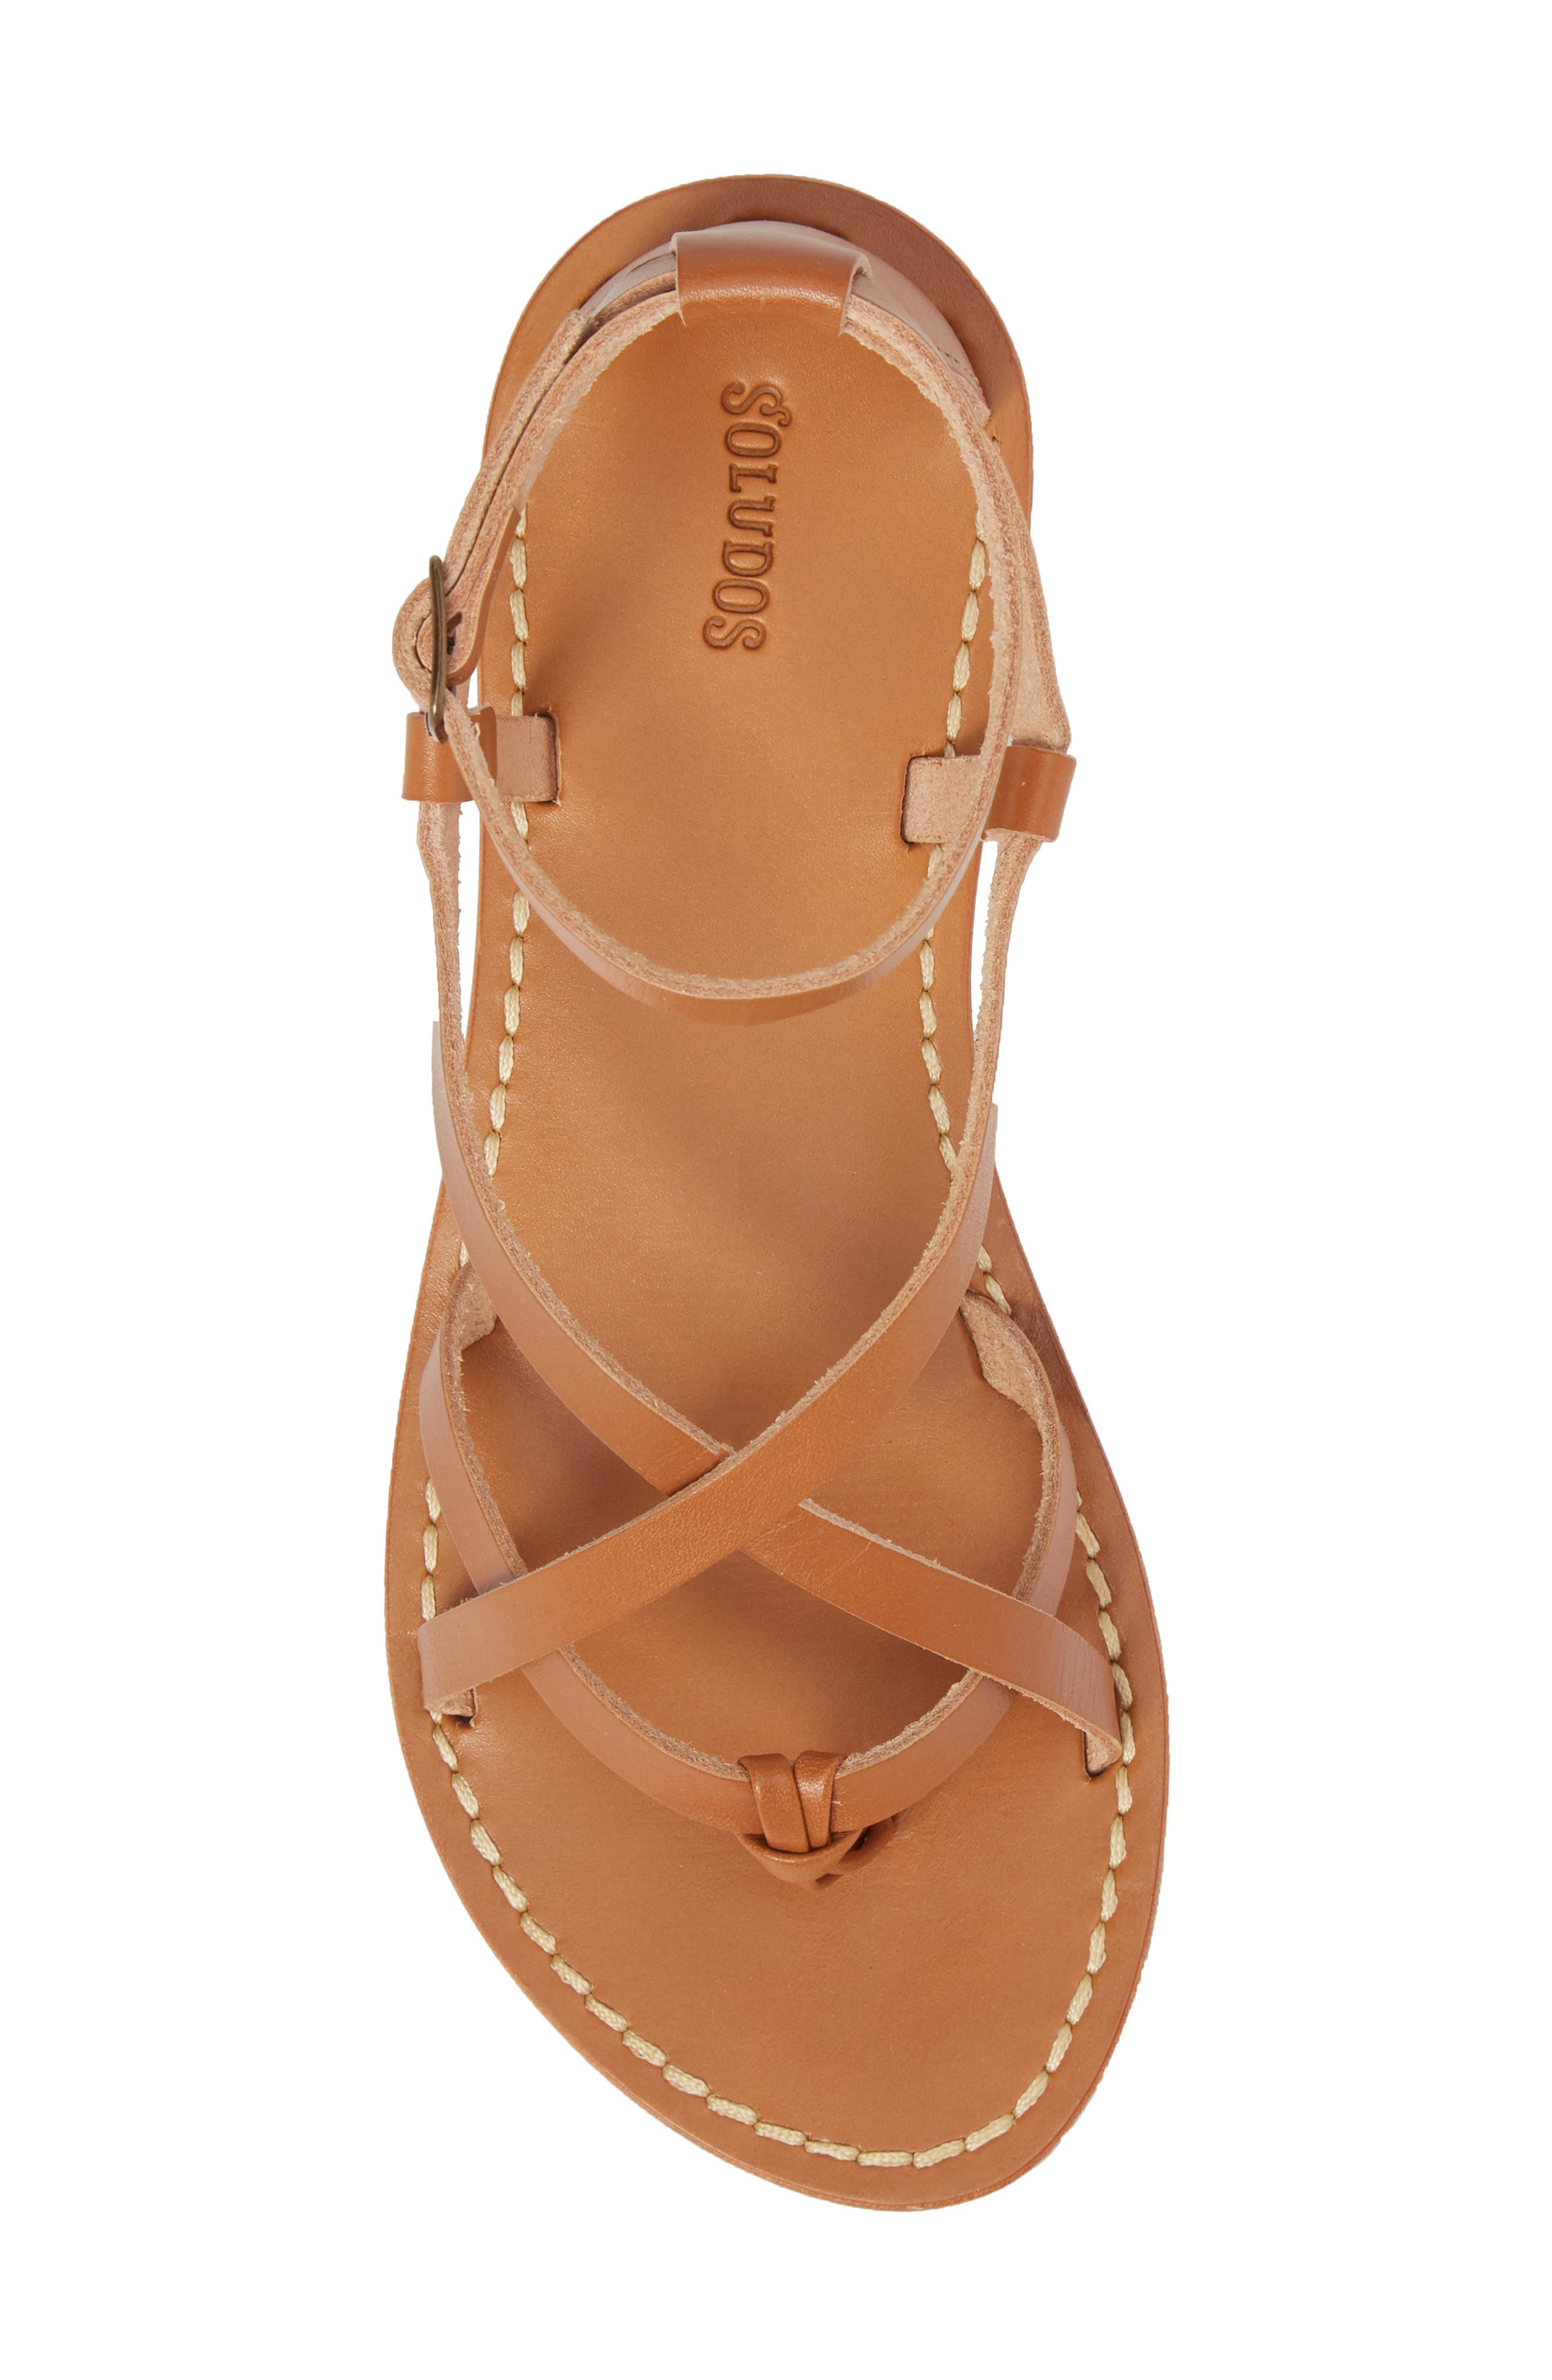 Strappy Sandal,                             Alternate thumbnail 5, color,                             Nude